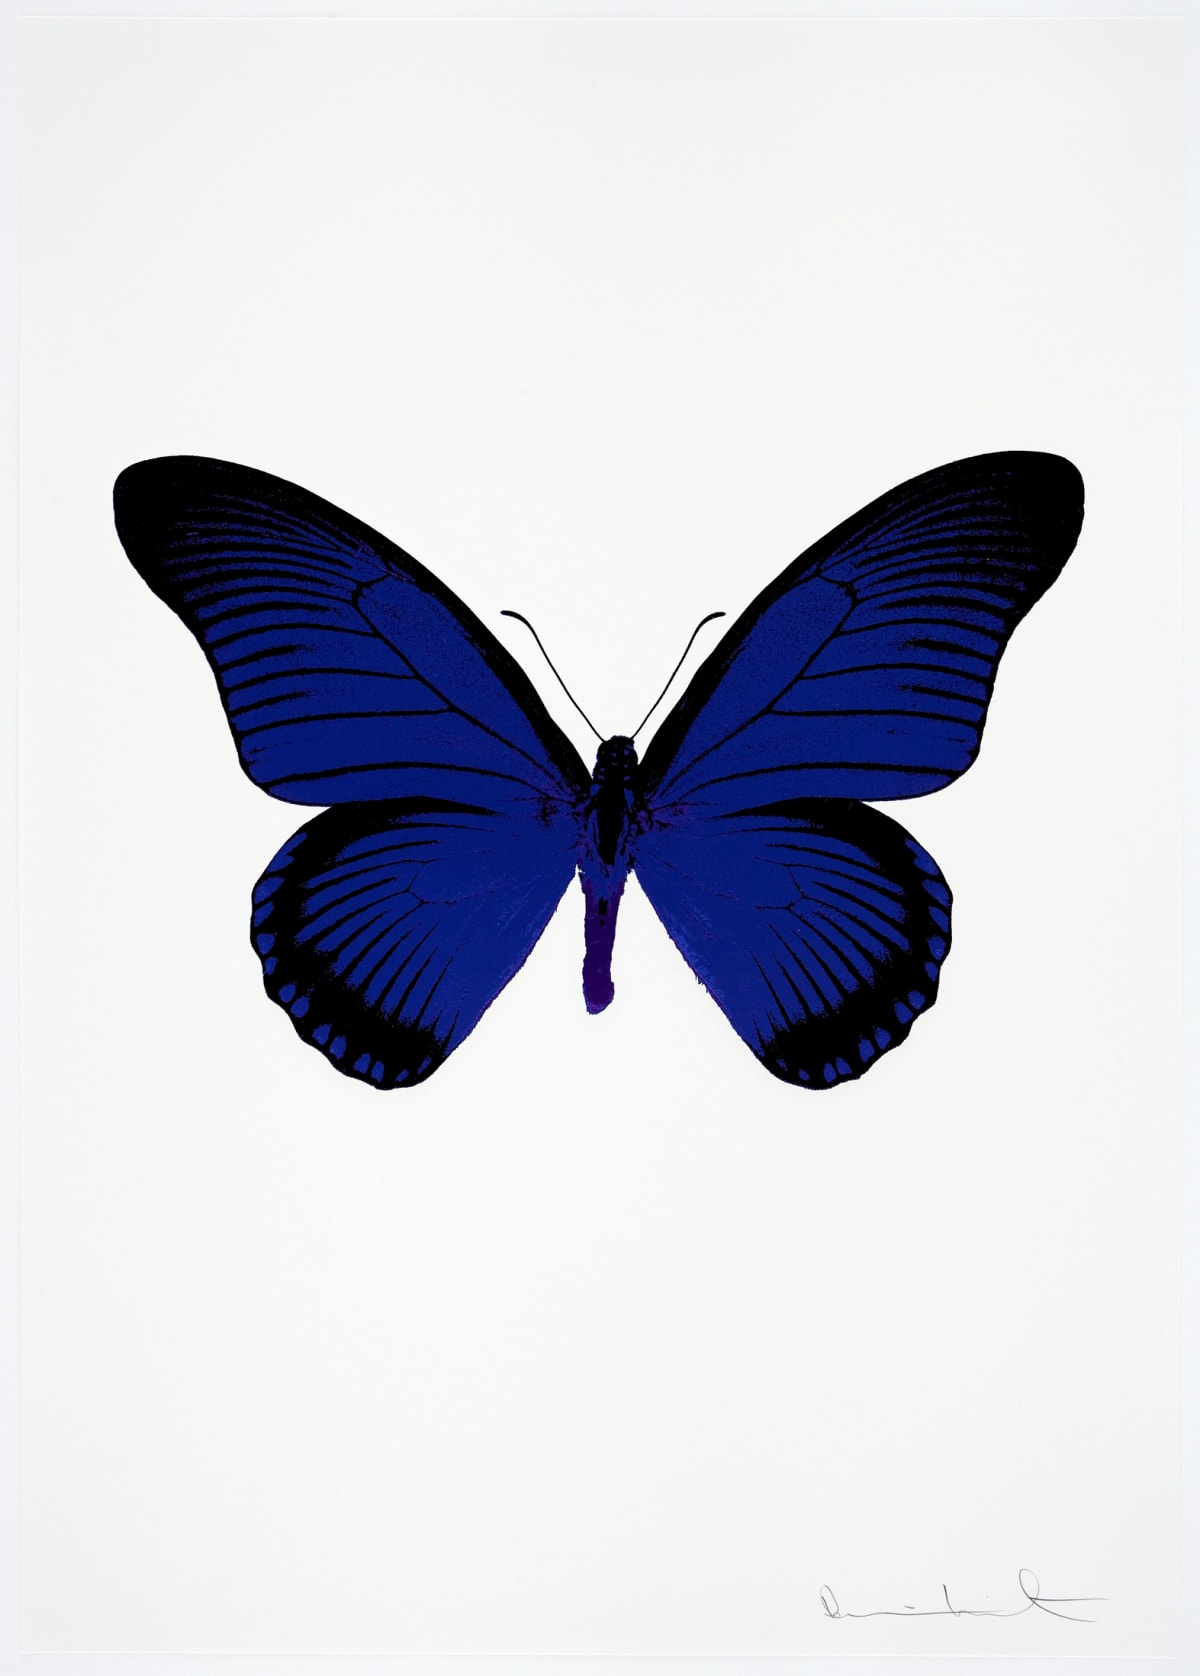 Damien Hirst The Souls IV - Westminster Blue/Raven Black/Imperial Purple Damien Hirst butterfly foil print for sale Damien Hirst print for sale , 2010 3 colour foil block on 300gsm Arches 88 archival paper. Signed and numbered. Published by Paul Stolper and Other Criteria 72 x 51cm OC8024 /1418-47 Edition of 15